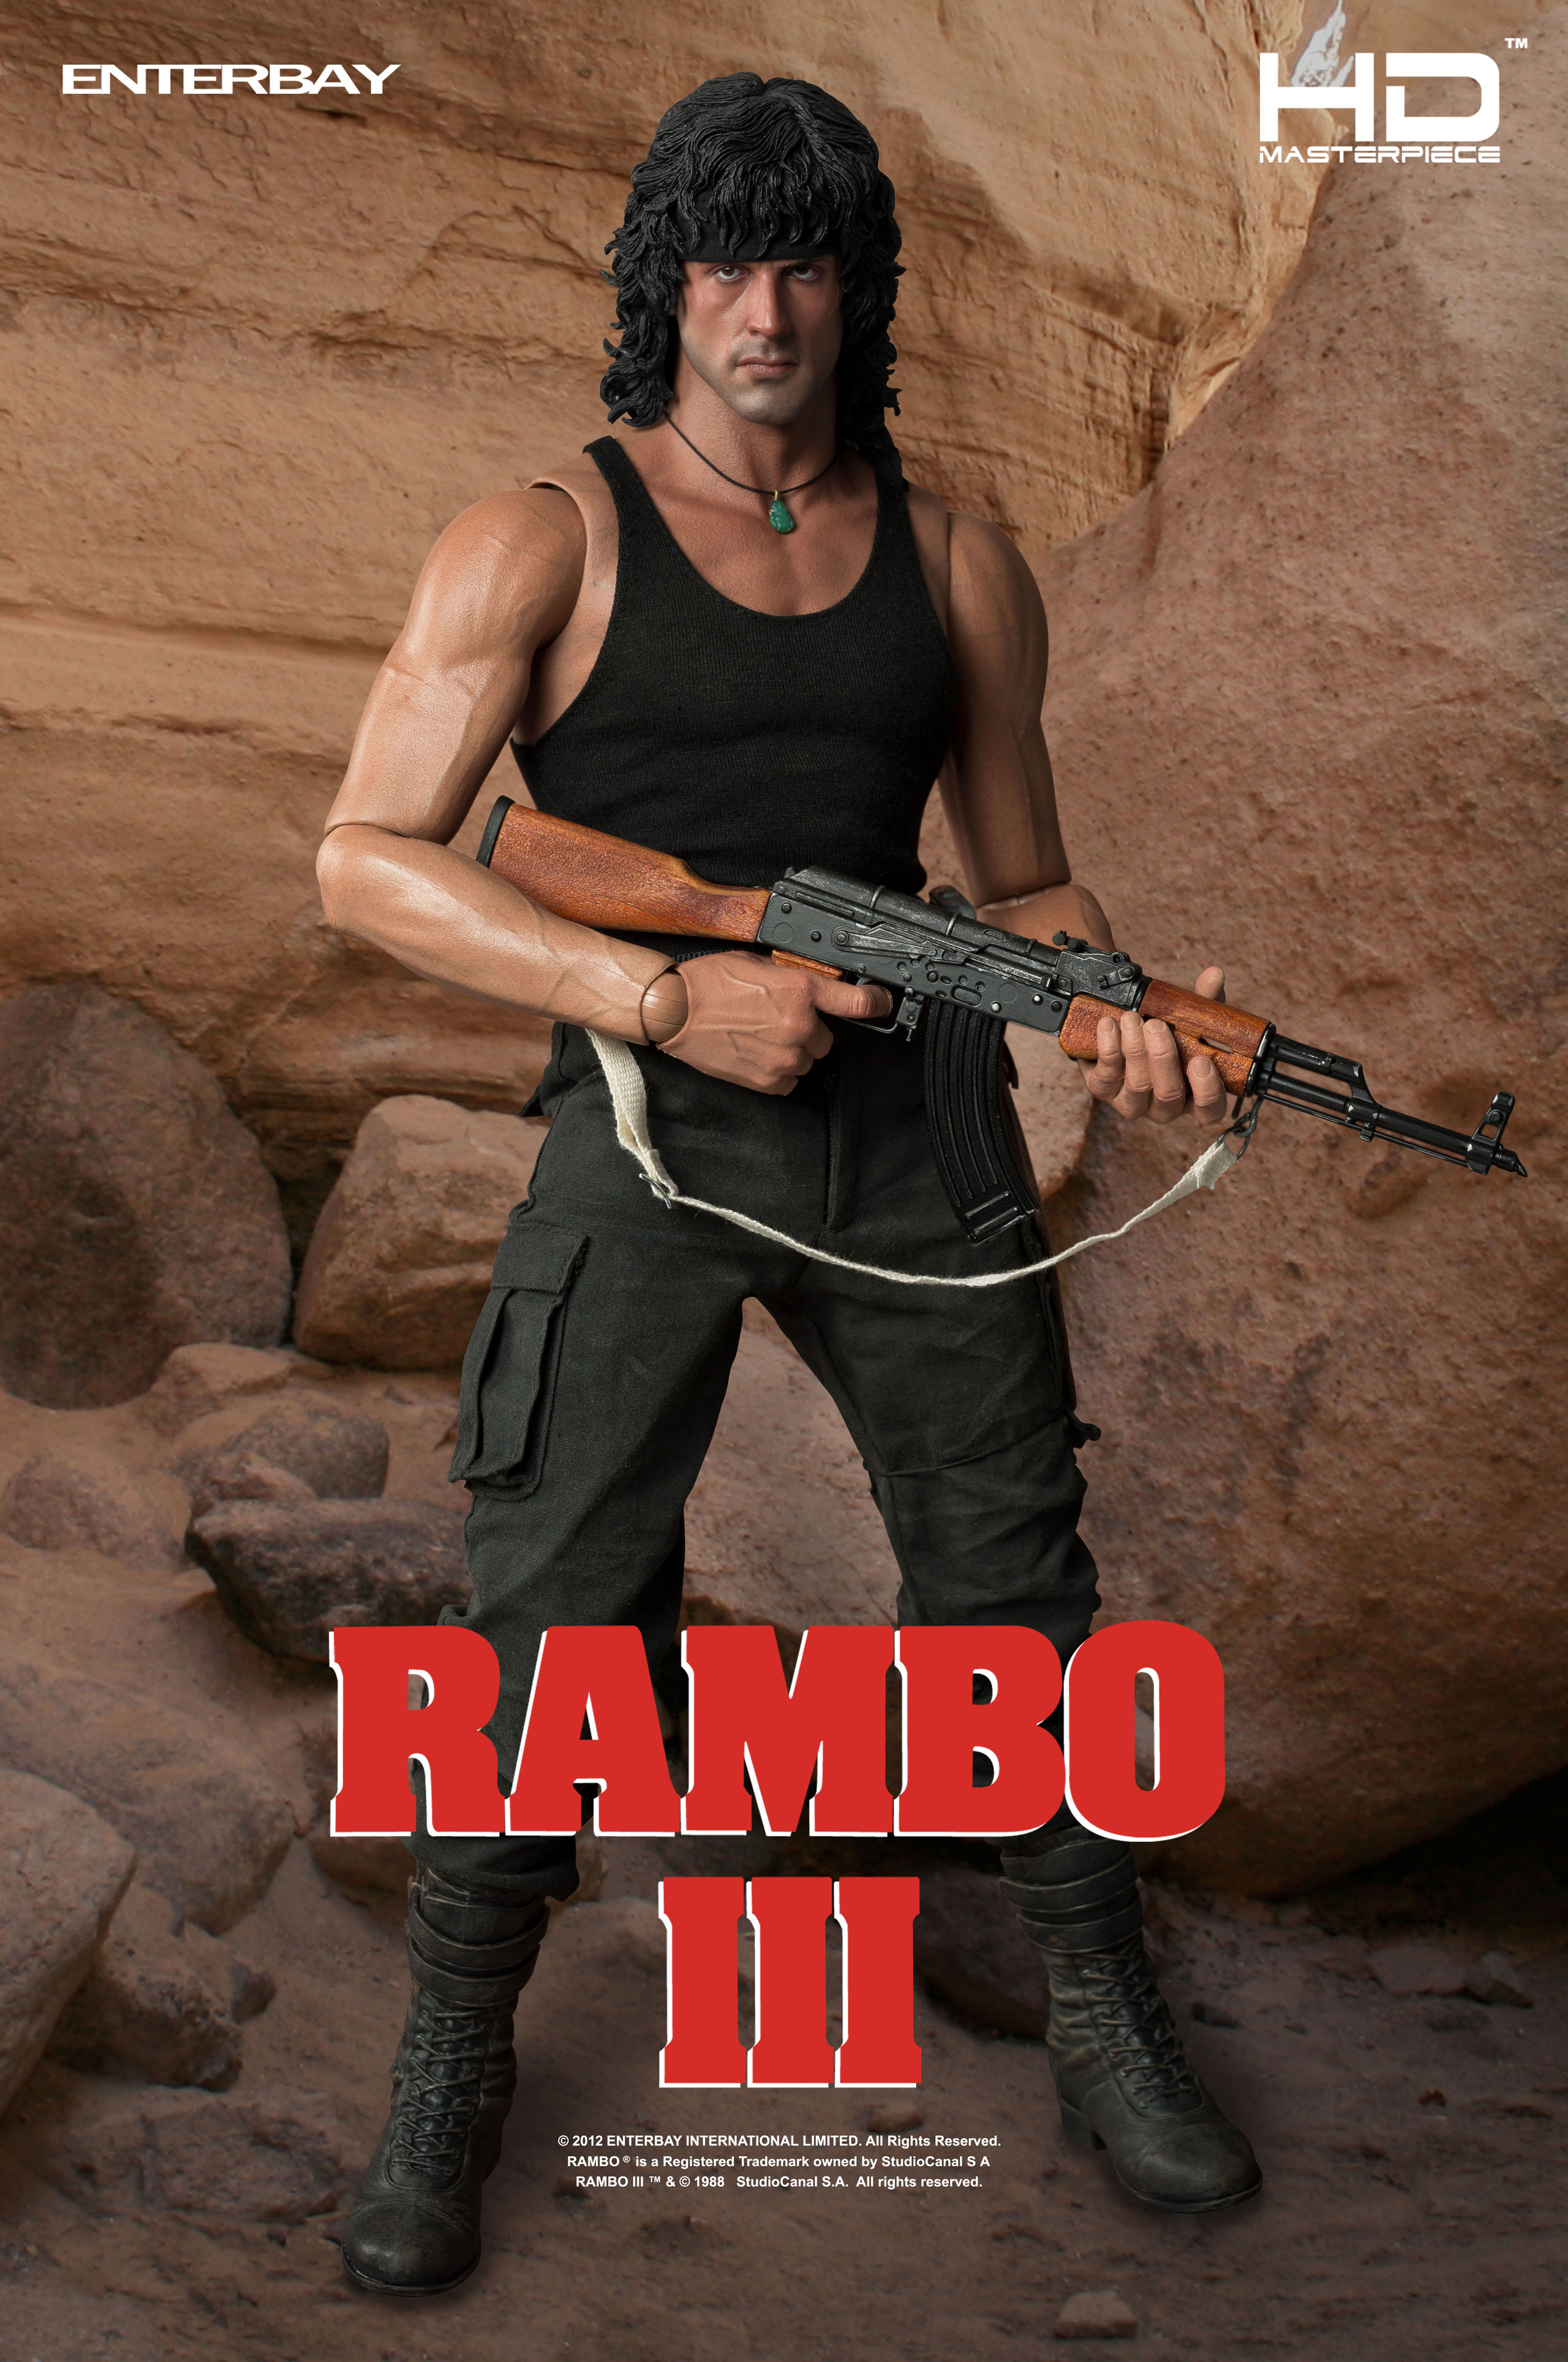 Enterbay 1/4th Scale HD Masterpiece Rambo III Collectible